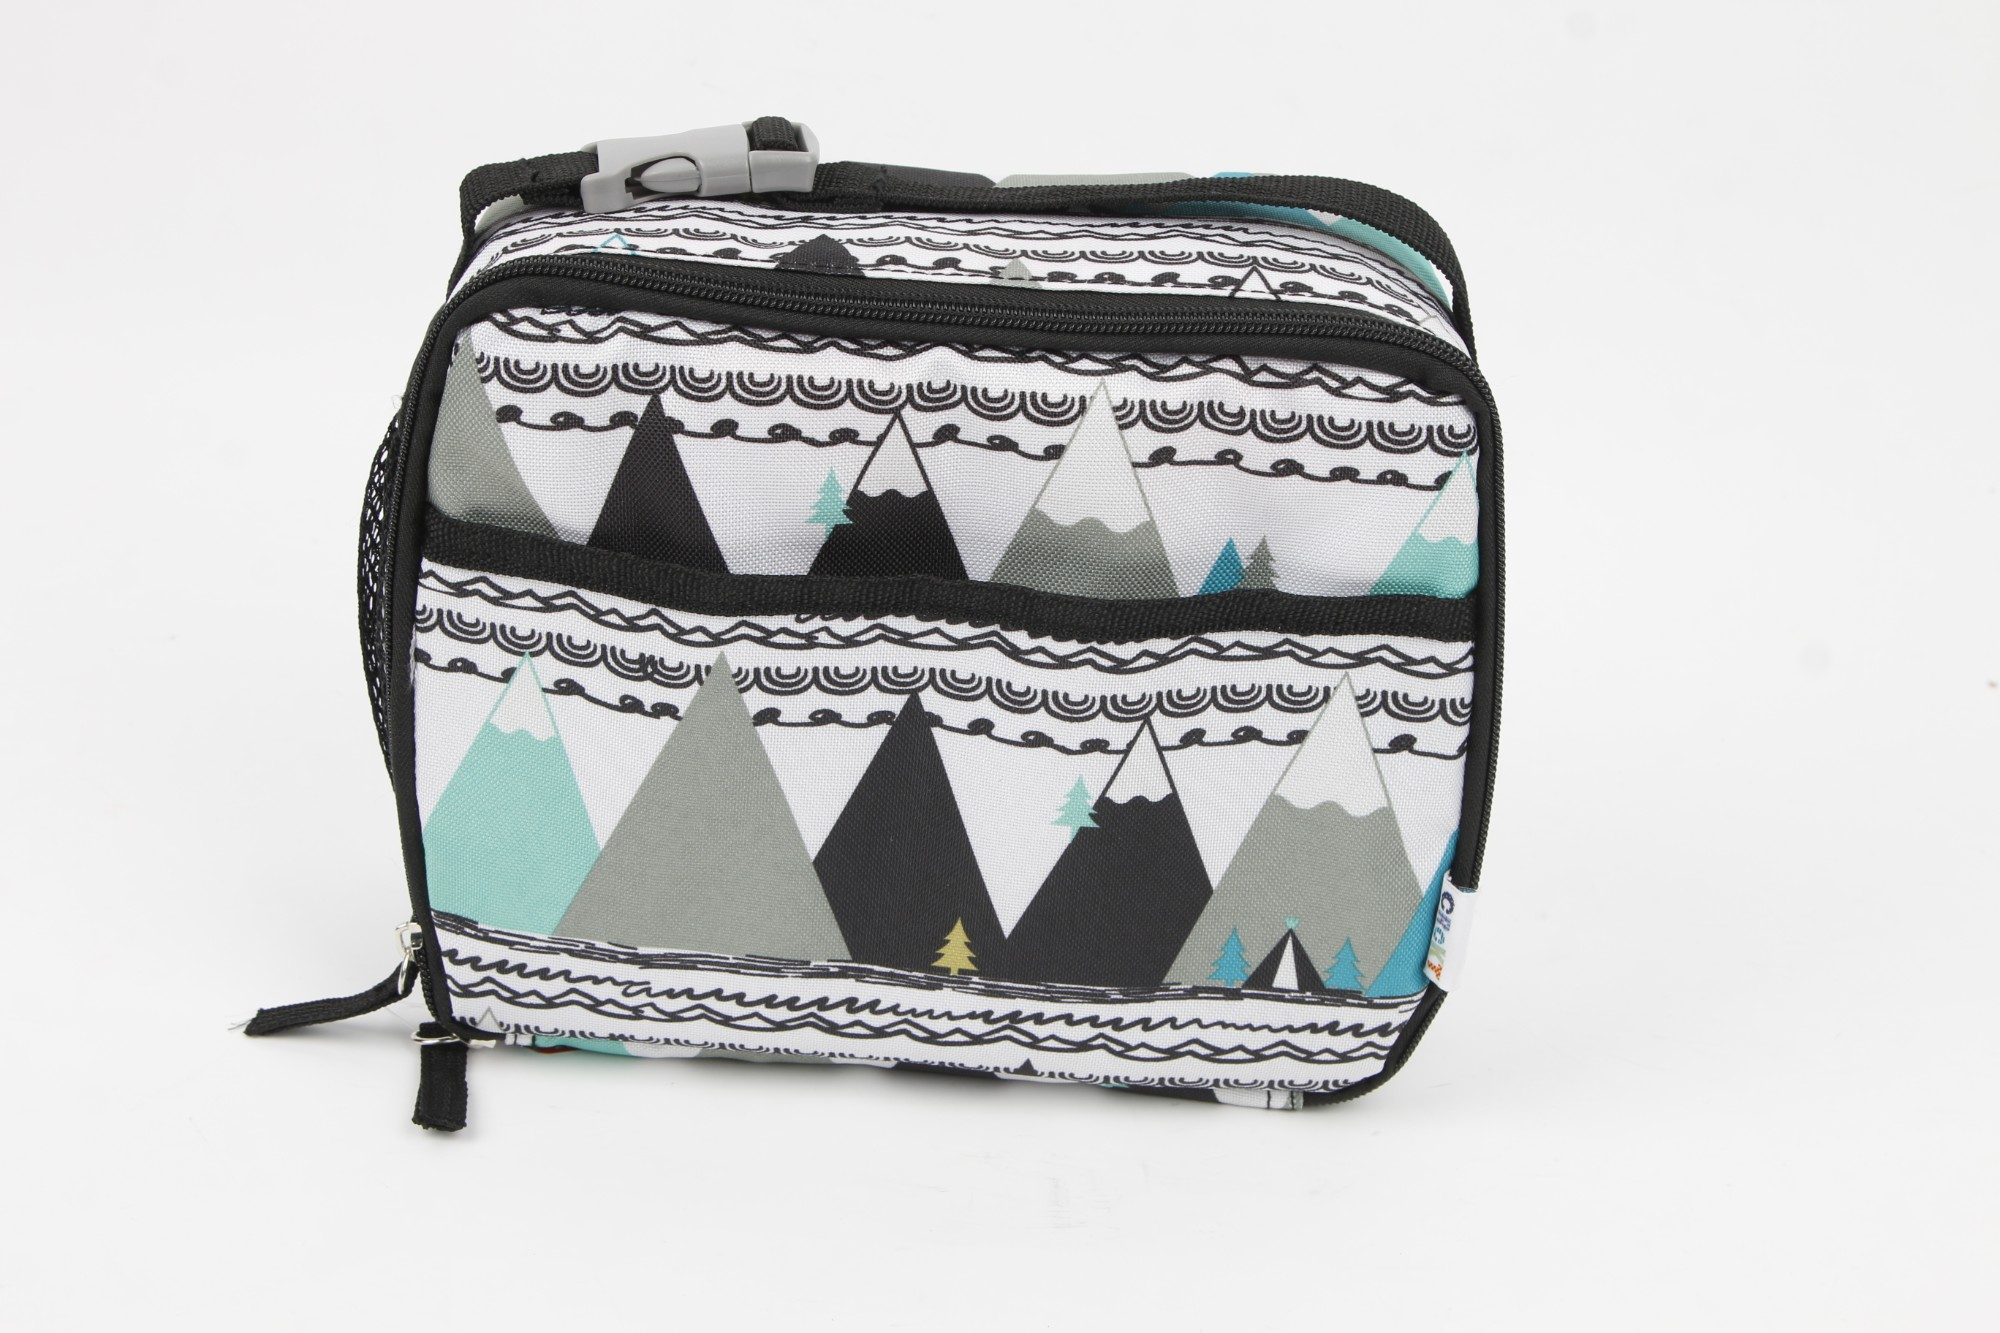 Dual Compartment Insulated Lunch Bag Thermal Bento Bag Cooler Bag Manufacturers, Dual Compartment Insulated Lunch Bag Thermal Bento Bag Cooler Bag Factory, Supply Dual Compartment Insulated Lunch Bag Thermal Bento Bag Cooler Bag